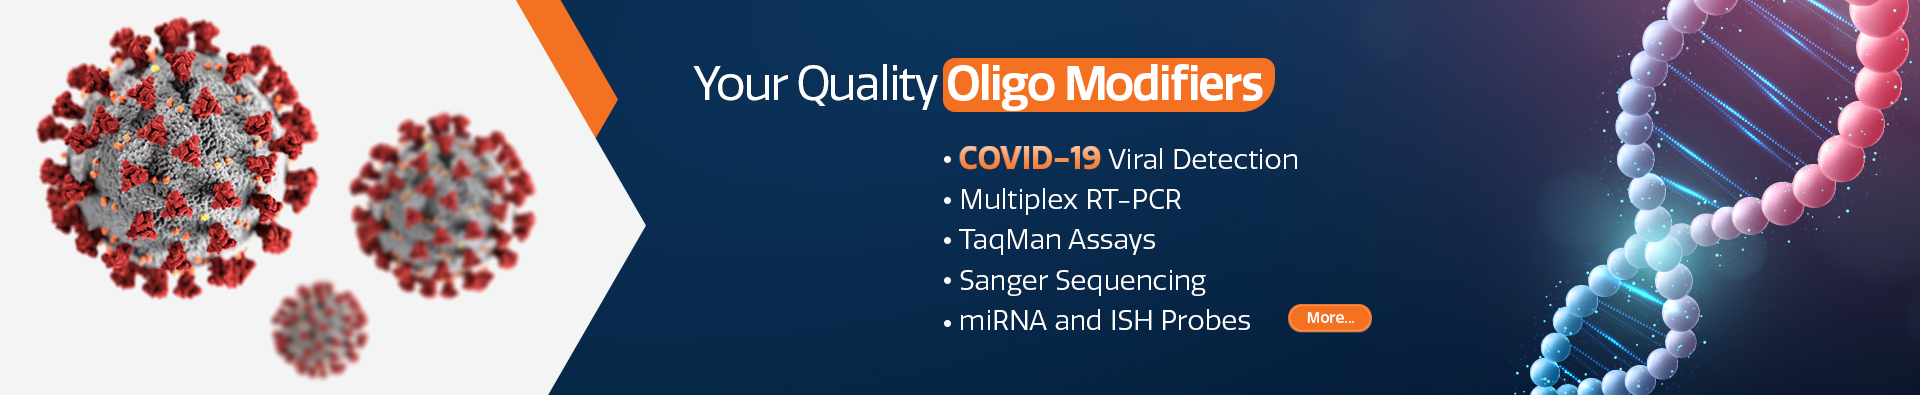 New-Tag-l-01---DNA-COVID---Landing-page-banner-2020